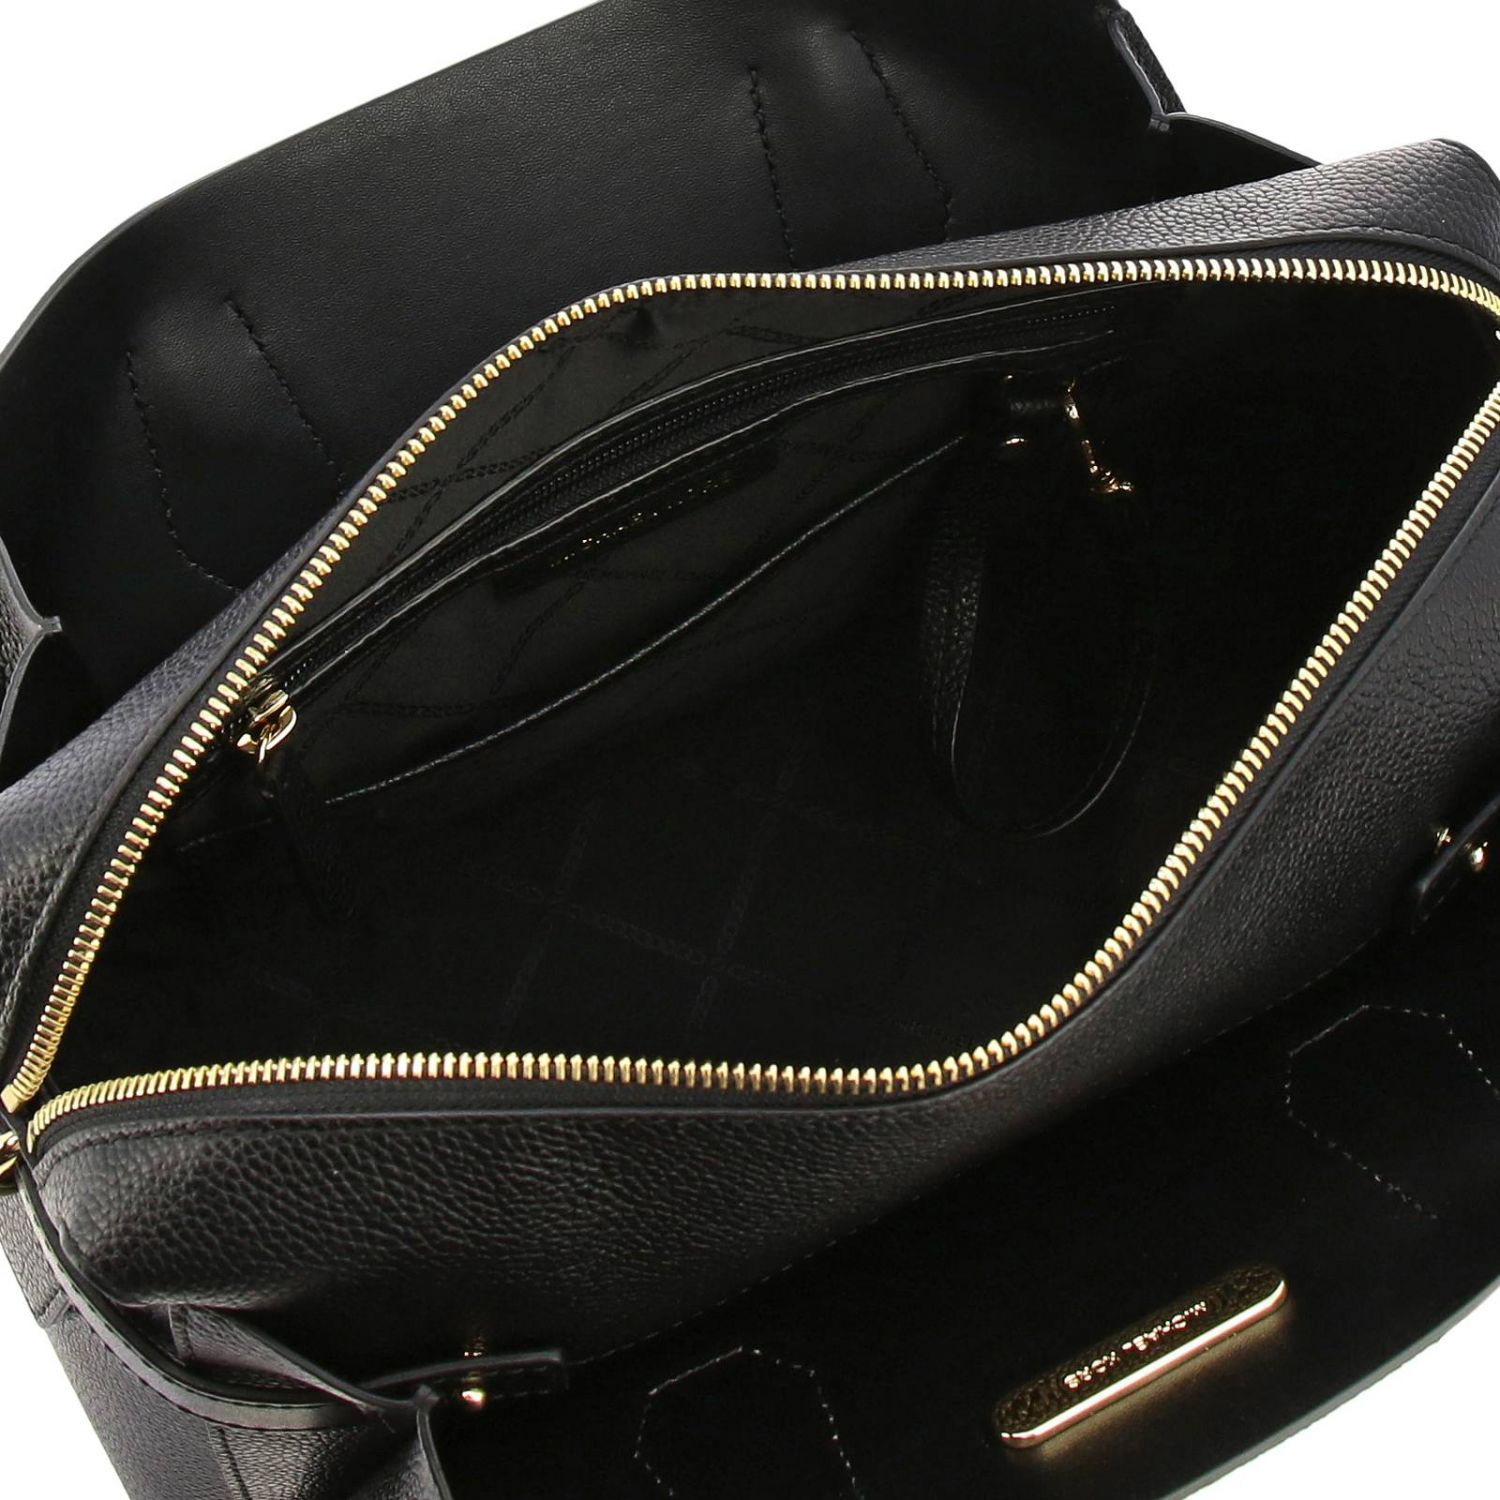 Mercer medium Michael Michael Kors bag in textured leather black 5